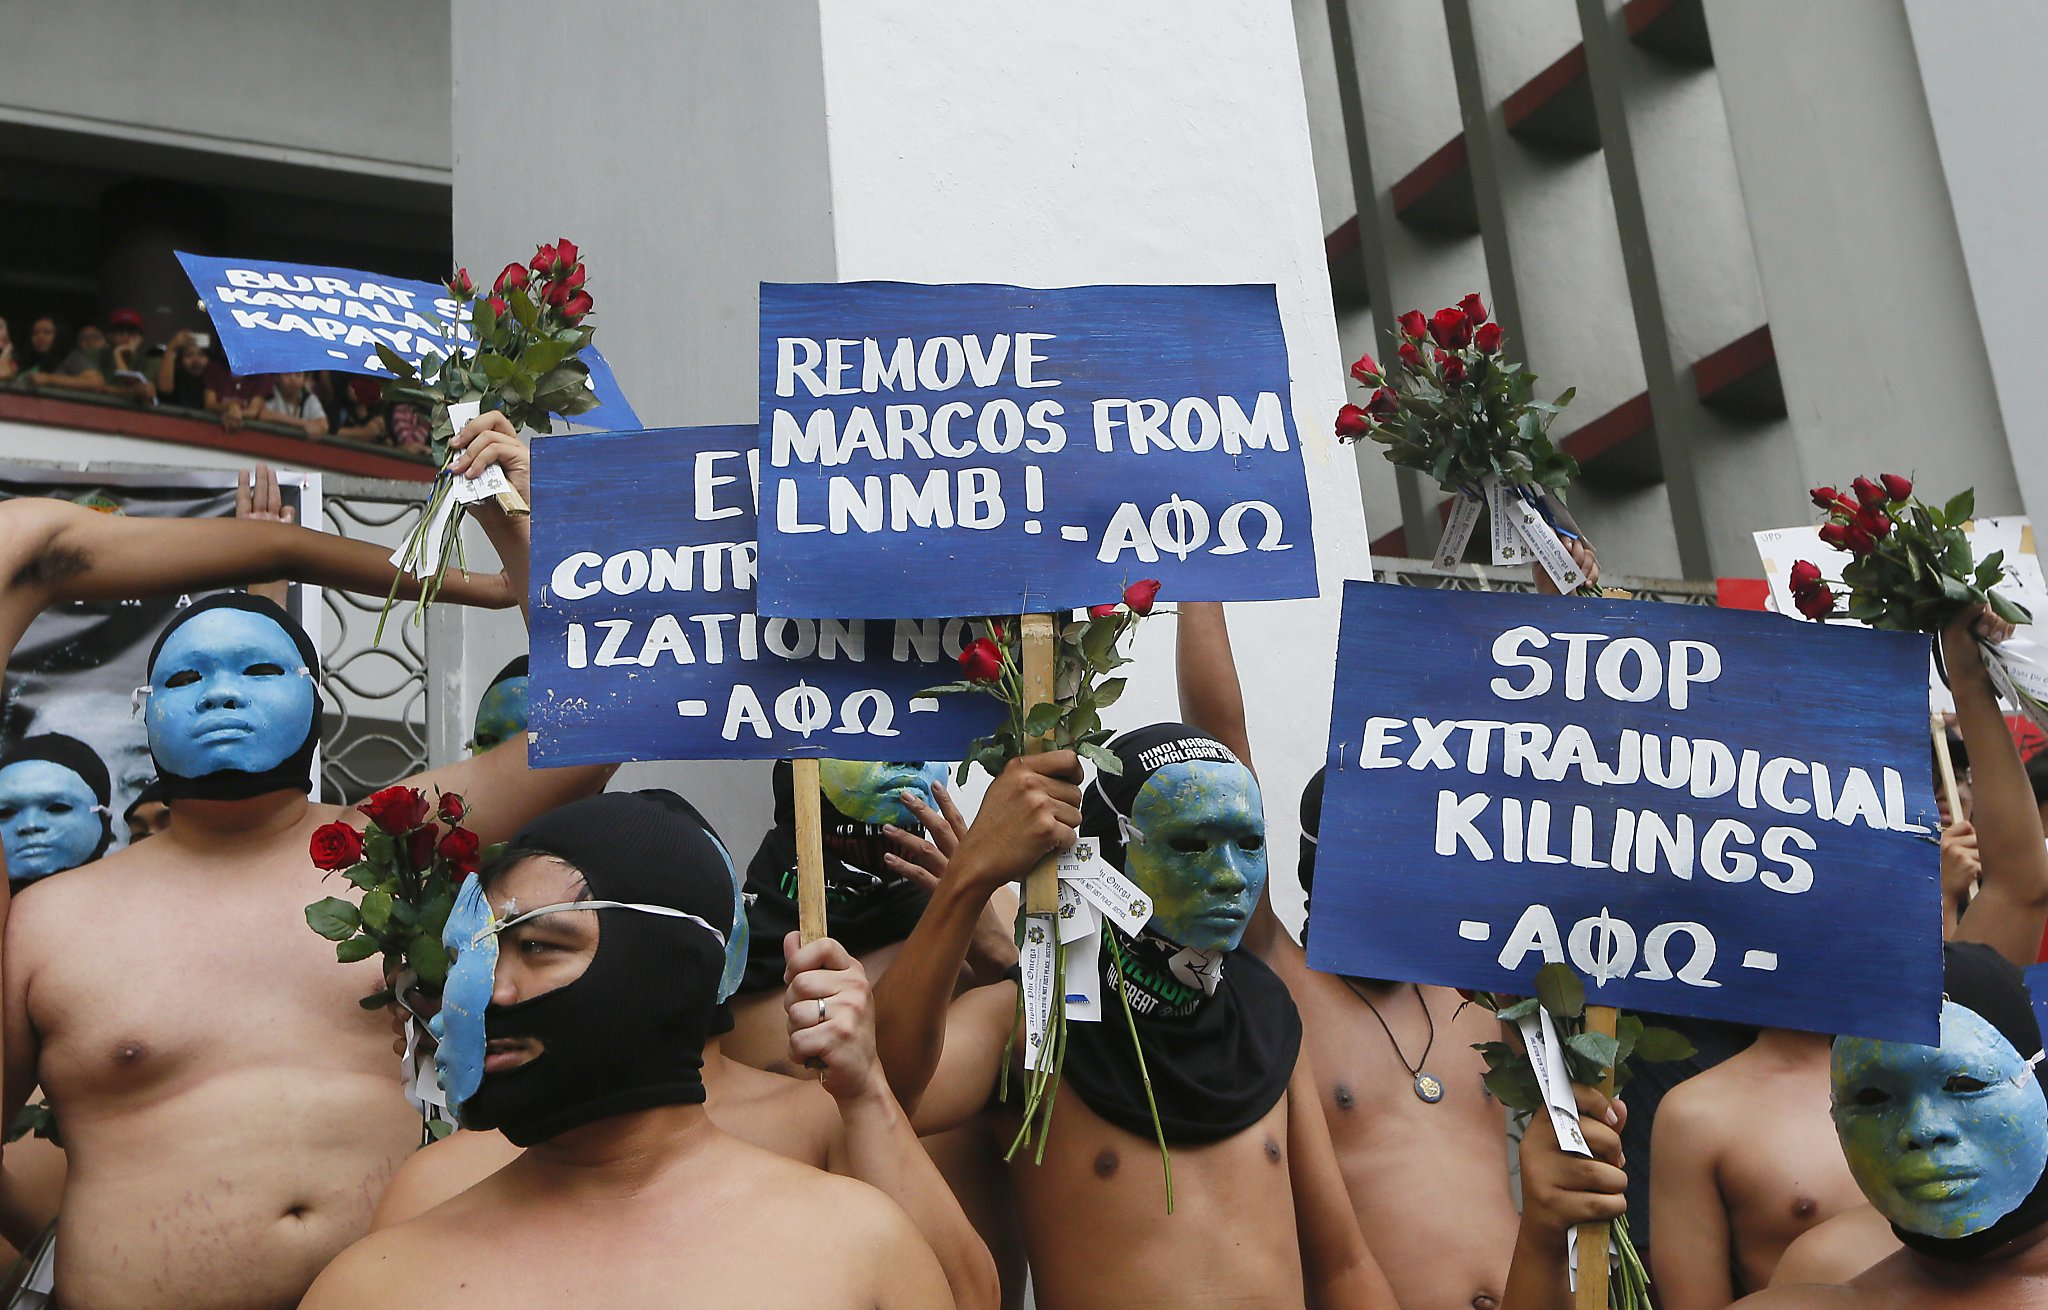 Heros Nude Images nude students, filipino activists protest dictator's burial